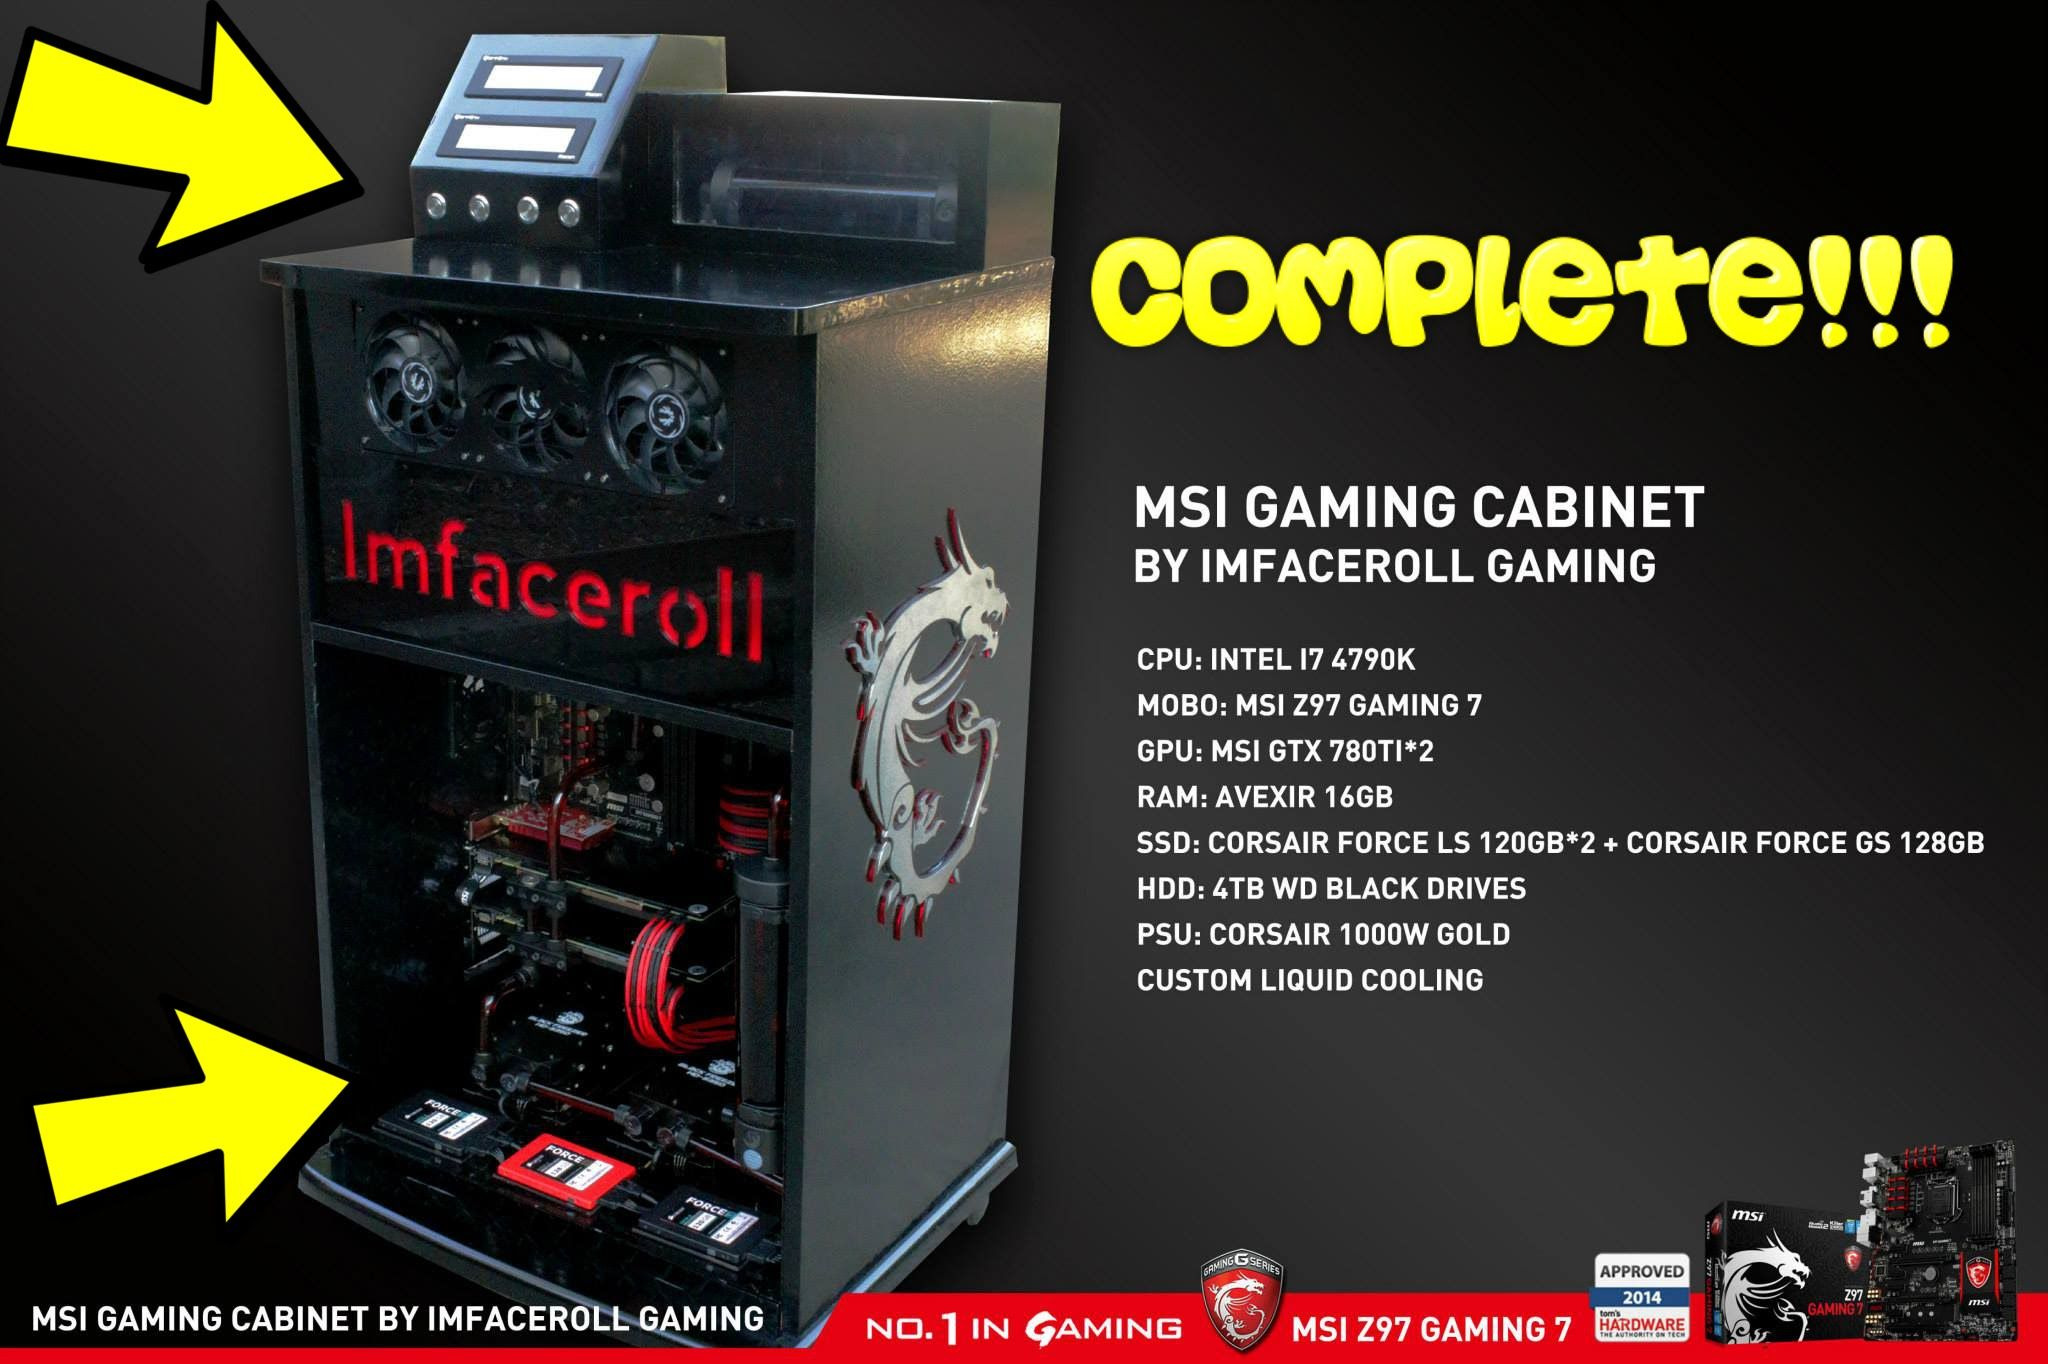 Merveilleux Custom Liquid Cooled Gaming PC Modification Within A Cabinet COMPLETE